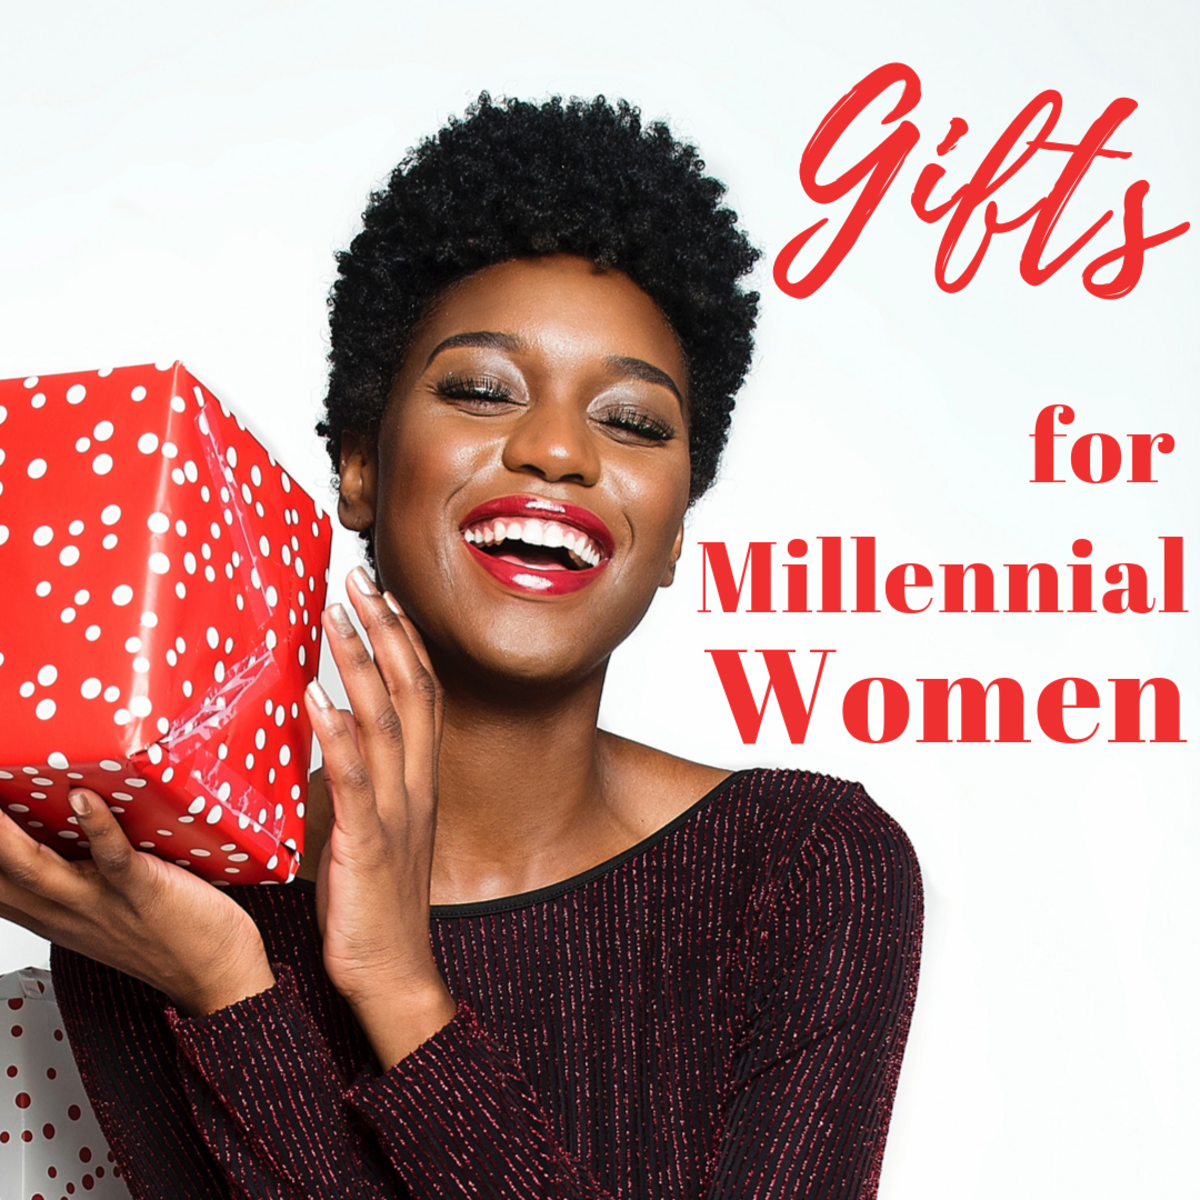 What are the best Christmas gifts for young women this year?